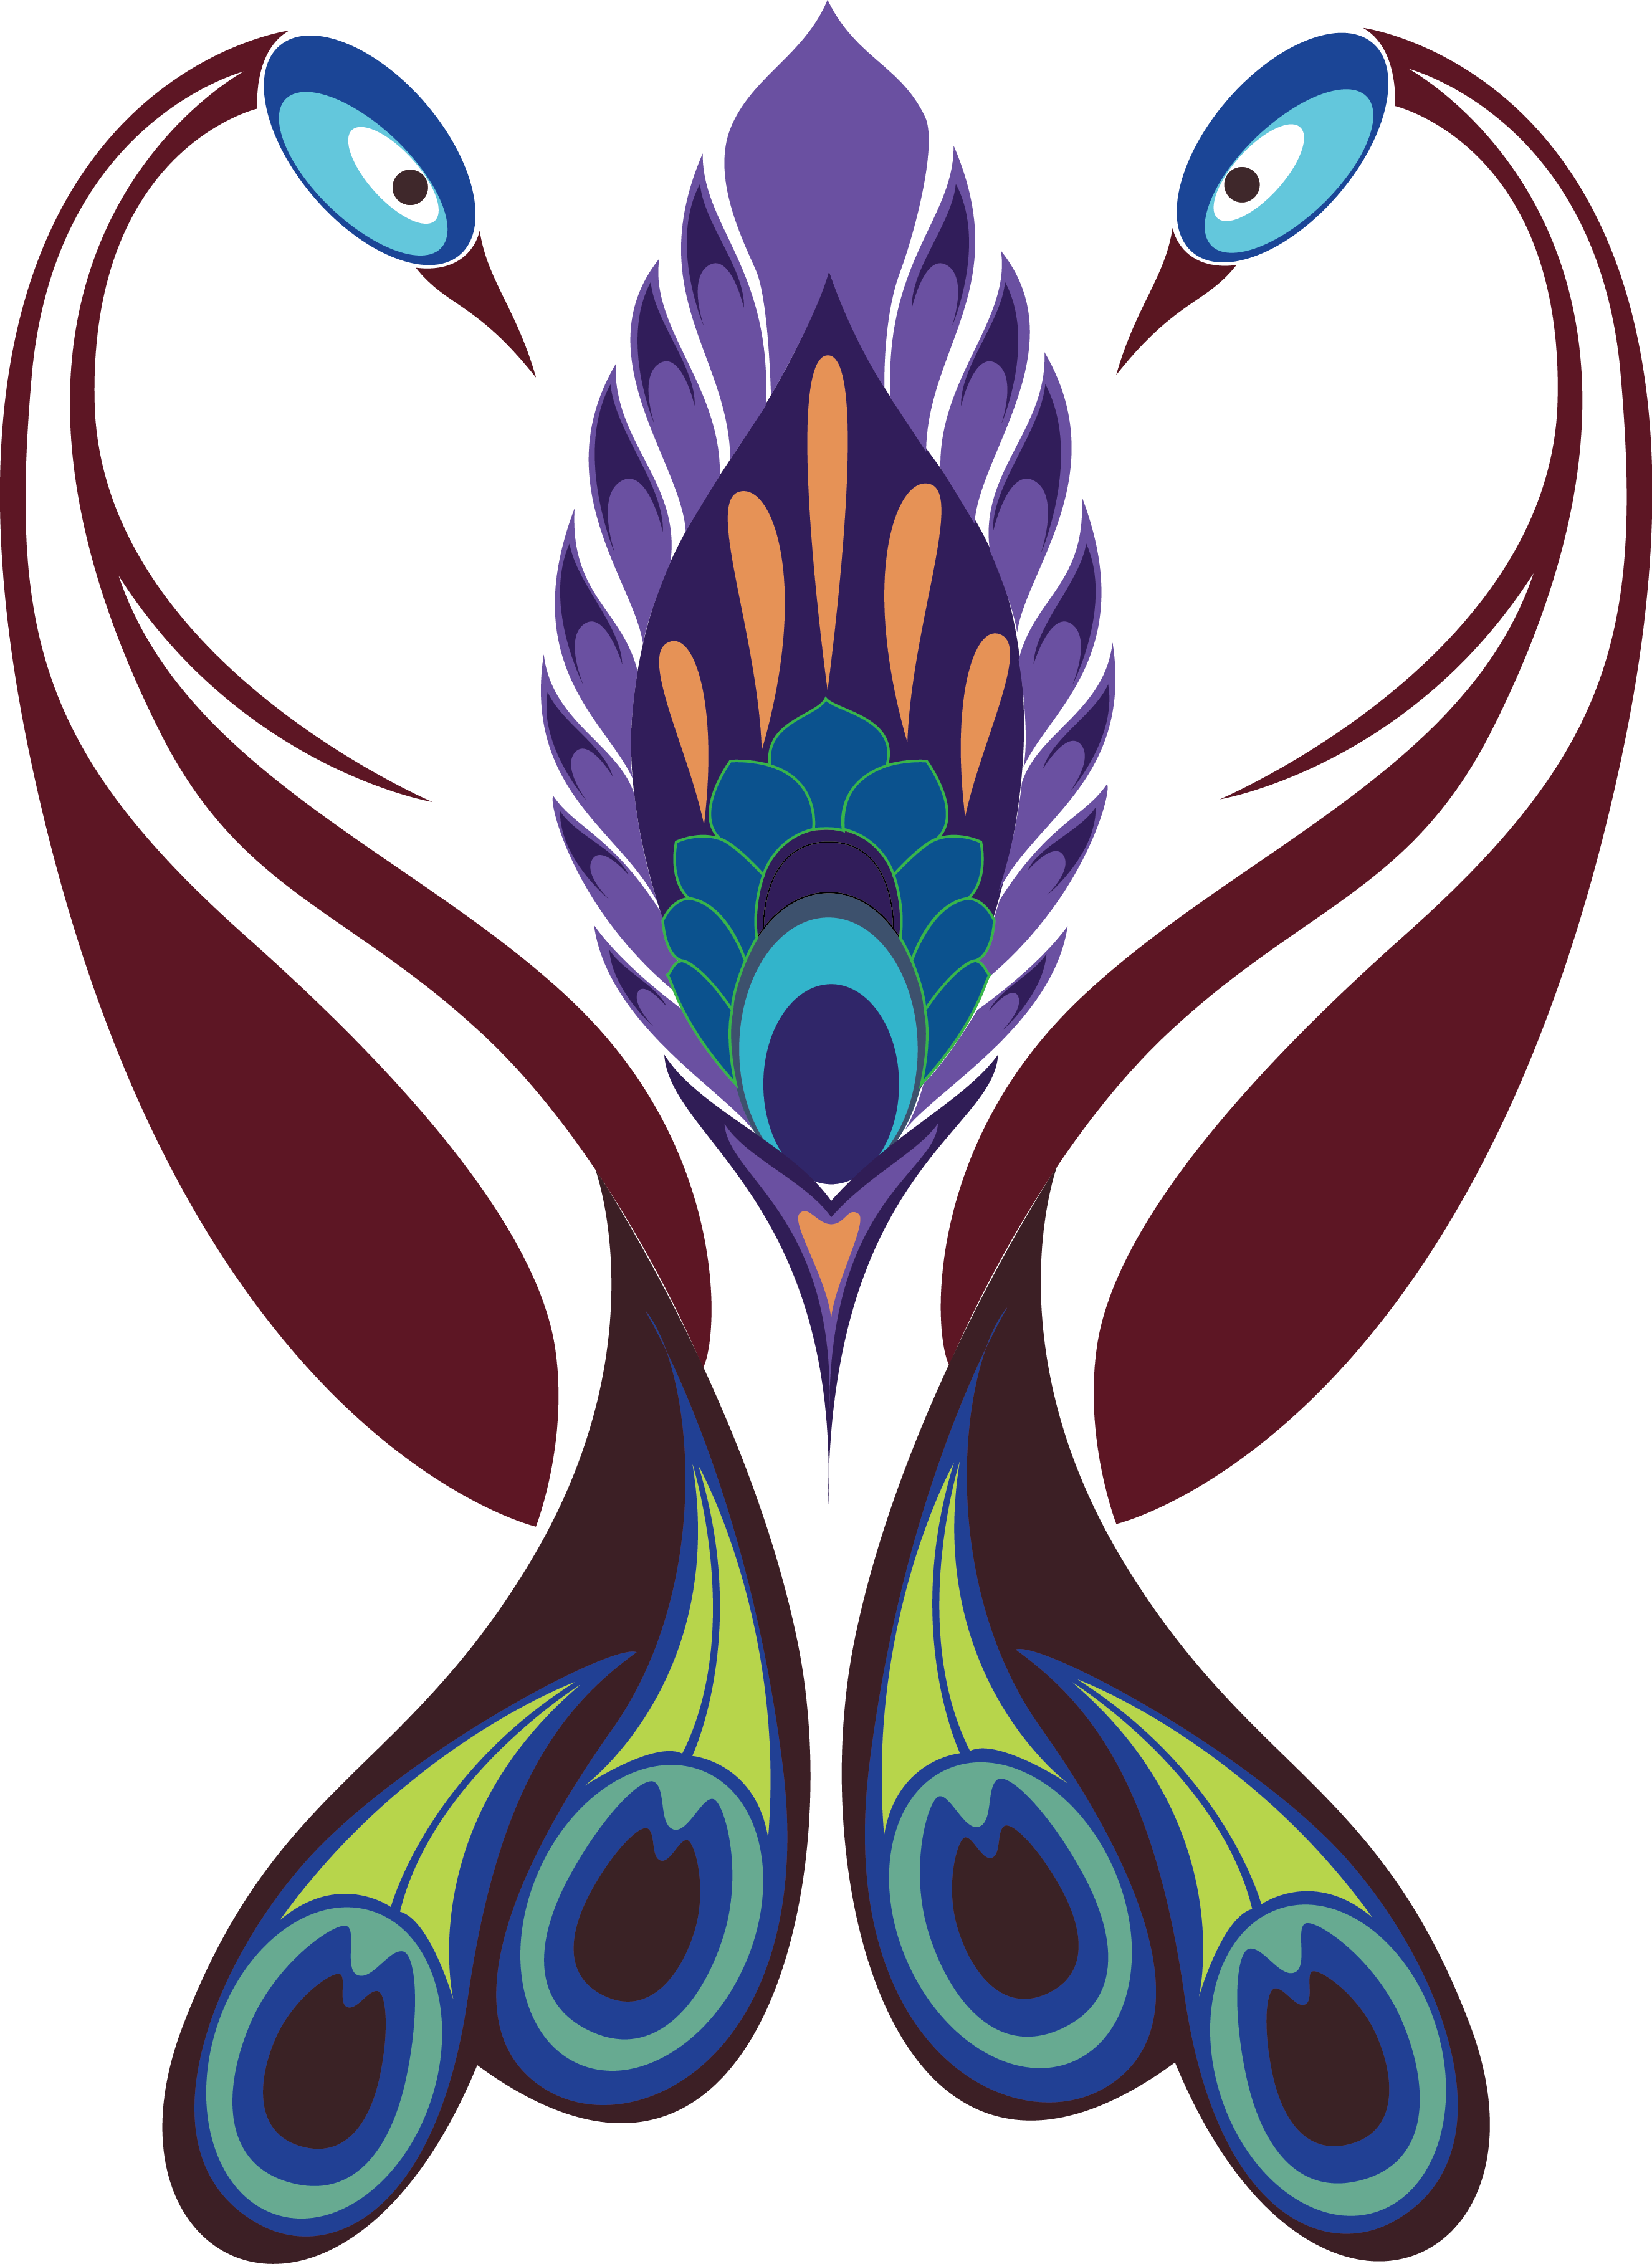 Feather clipart paisley peacock. Trinetra about free indian